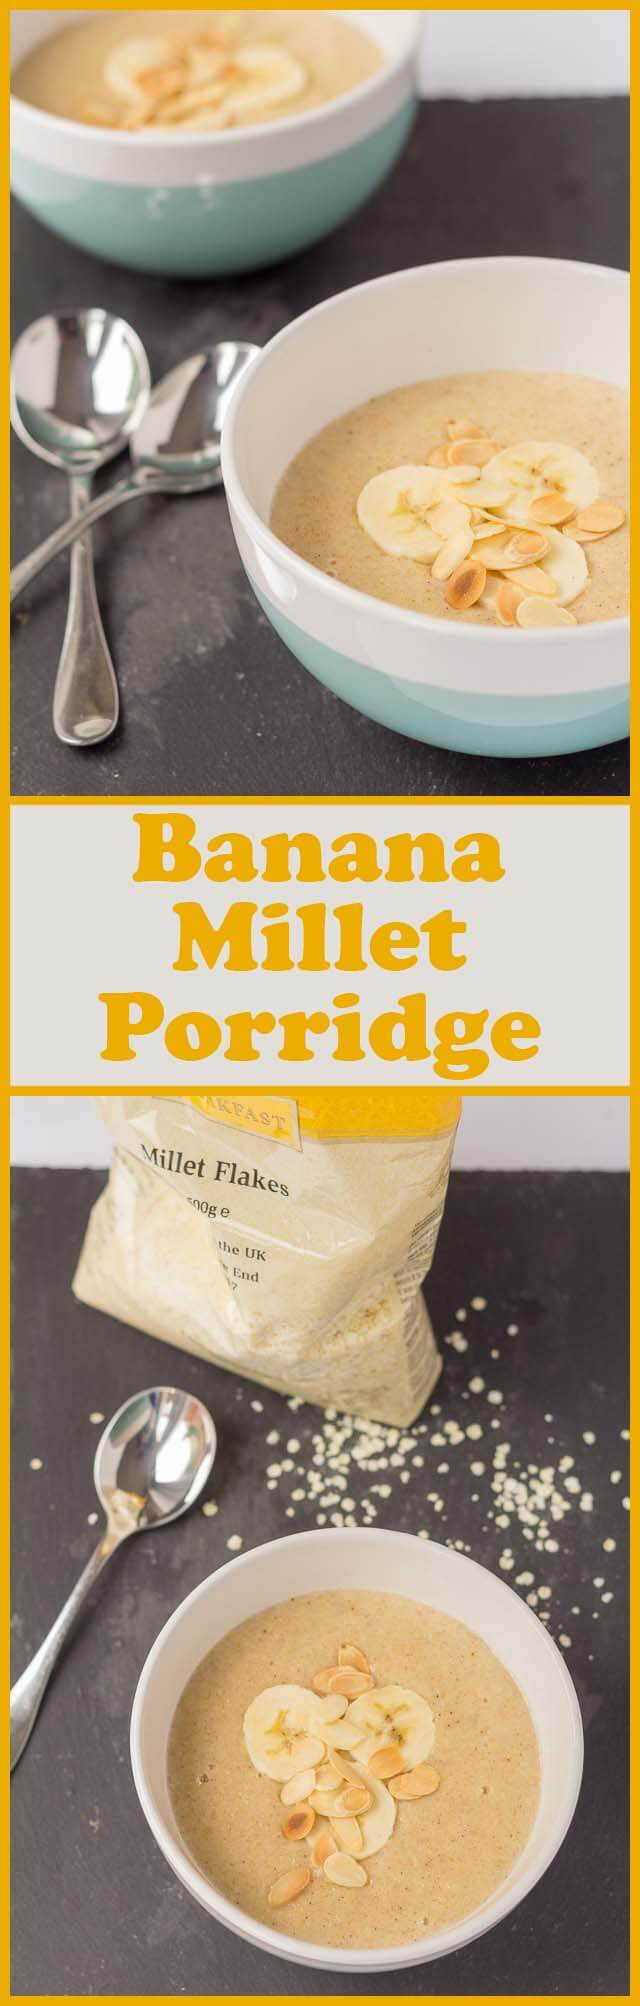 Banana millet porridge is a deliciously creamy tasting alternative breakfast to oatmeal. Gluten free and ready in just 15 minutes, this healthy and satisfying breakfast makes for a great start to the day!